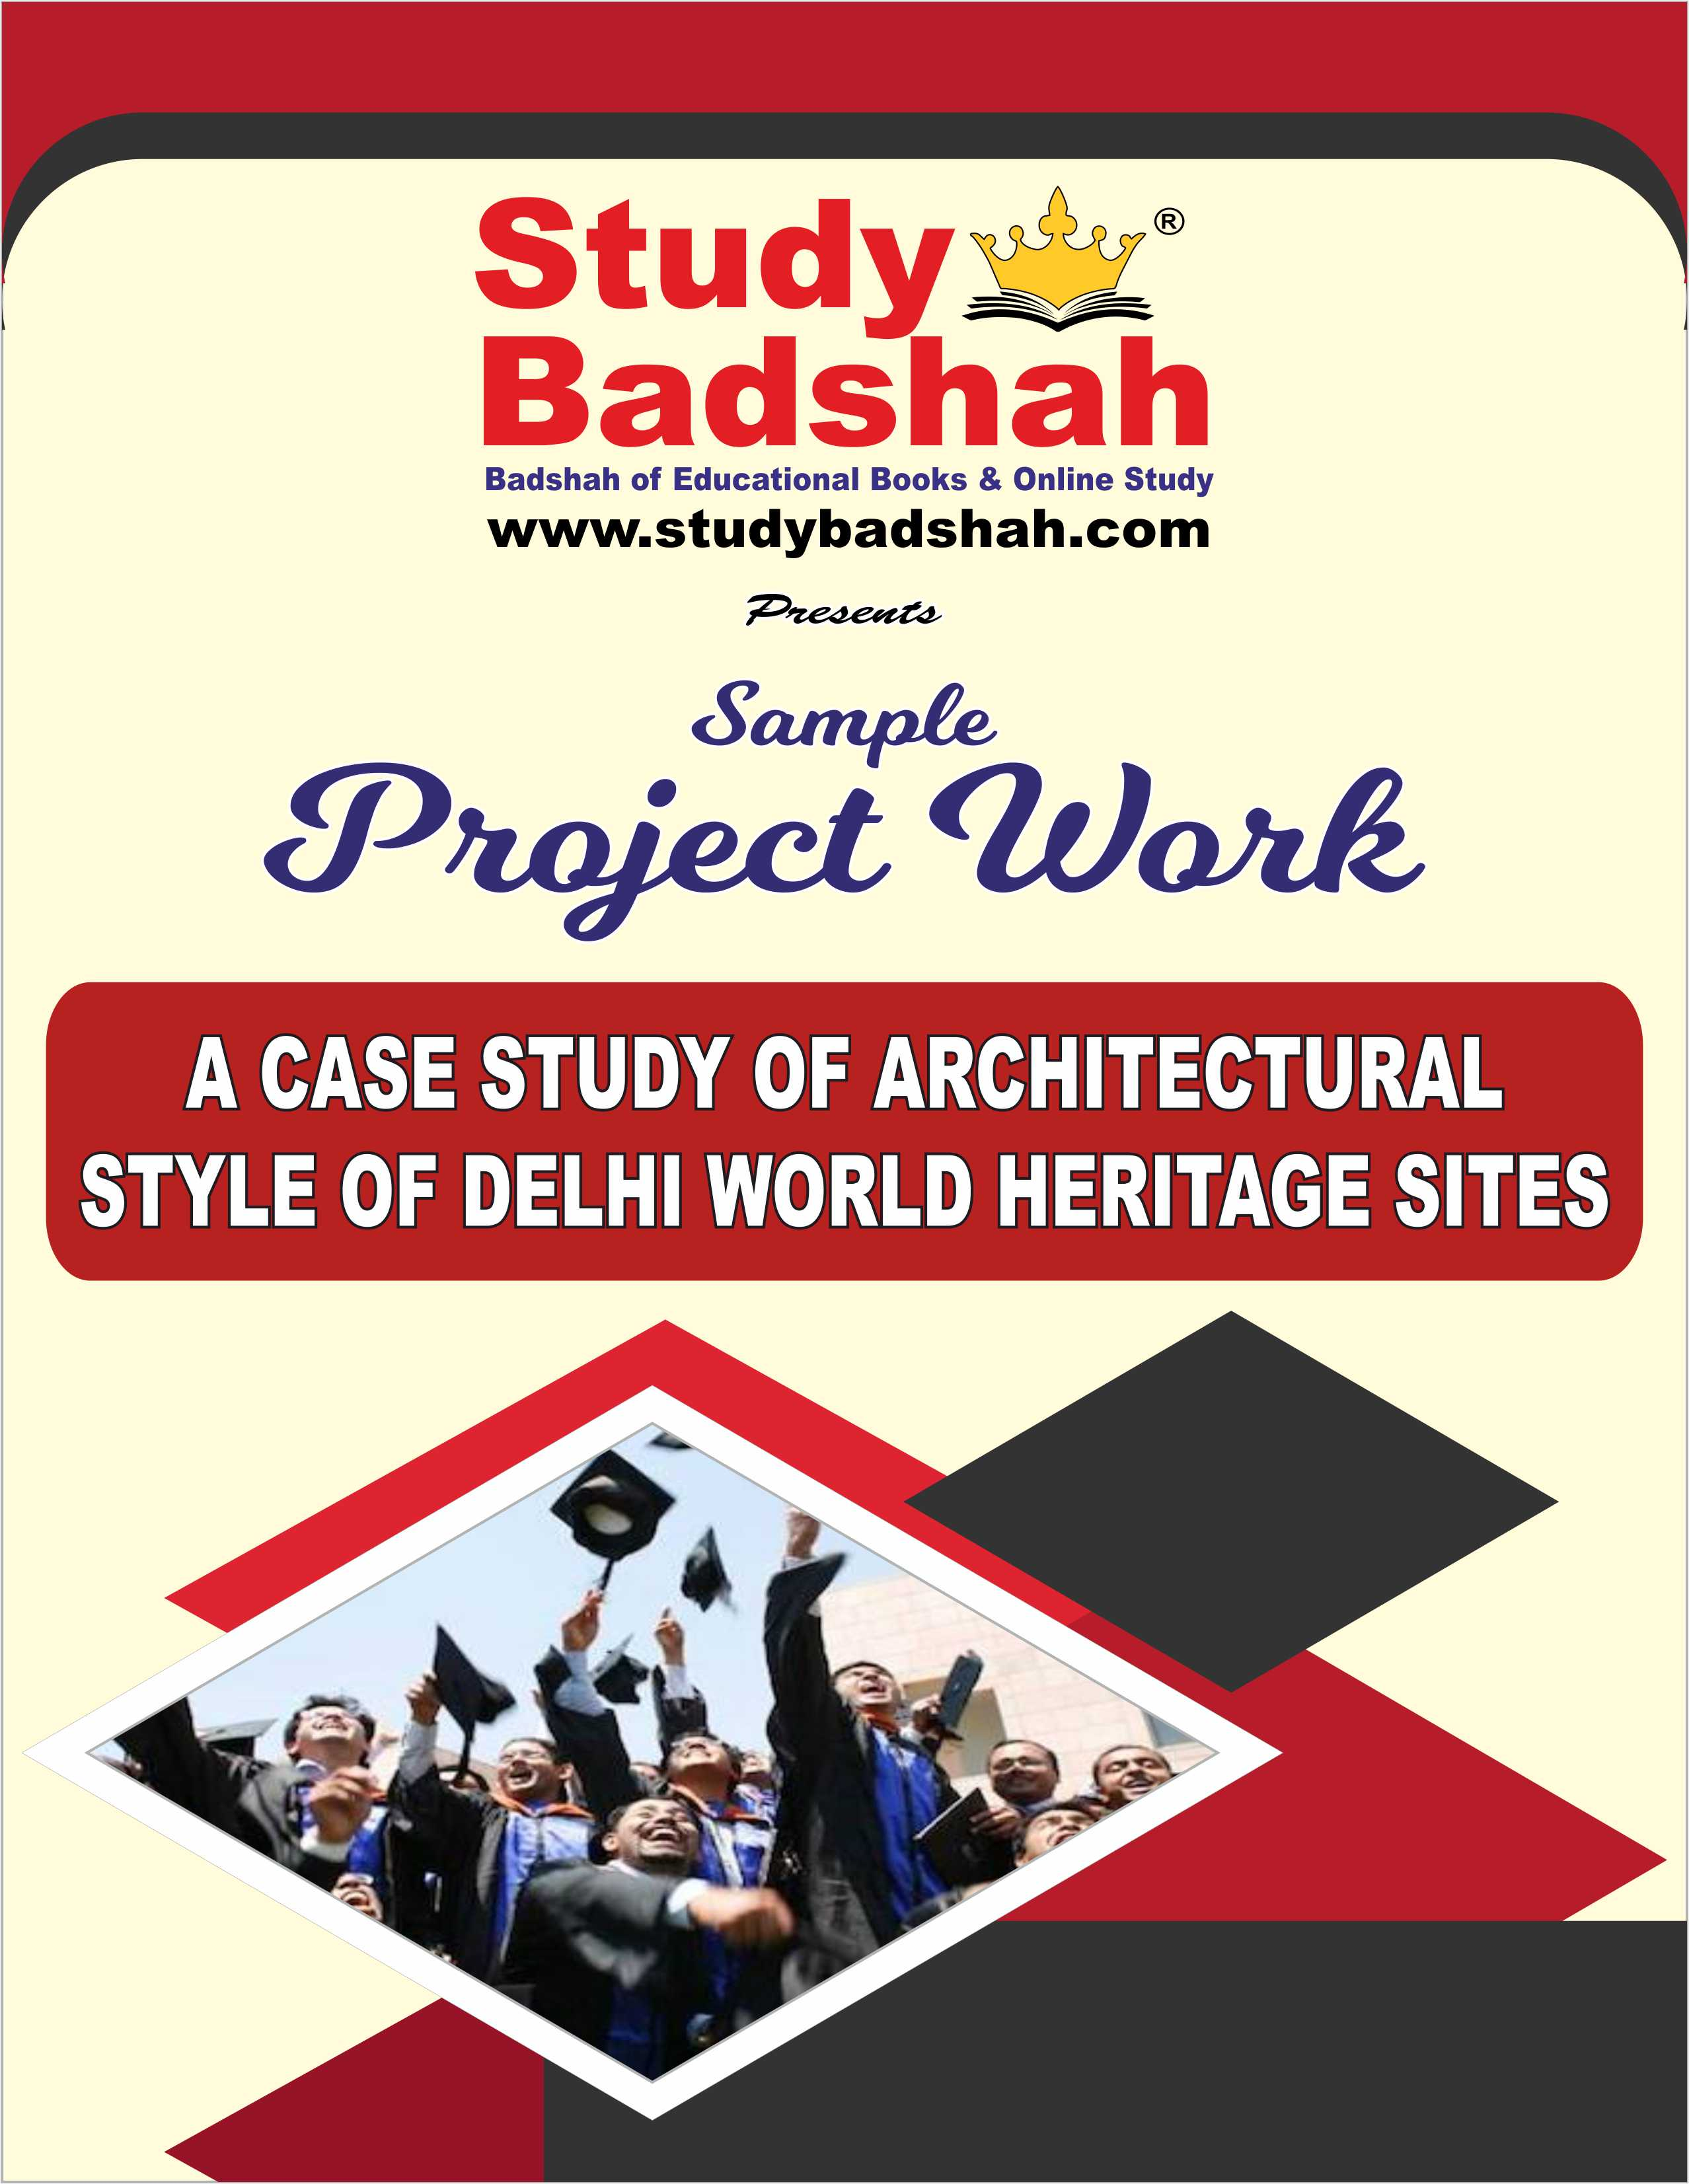 A CASE STUDY OF ARCHITECTURAL STYLE OF DELHI WORLD HERITAGE SITES